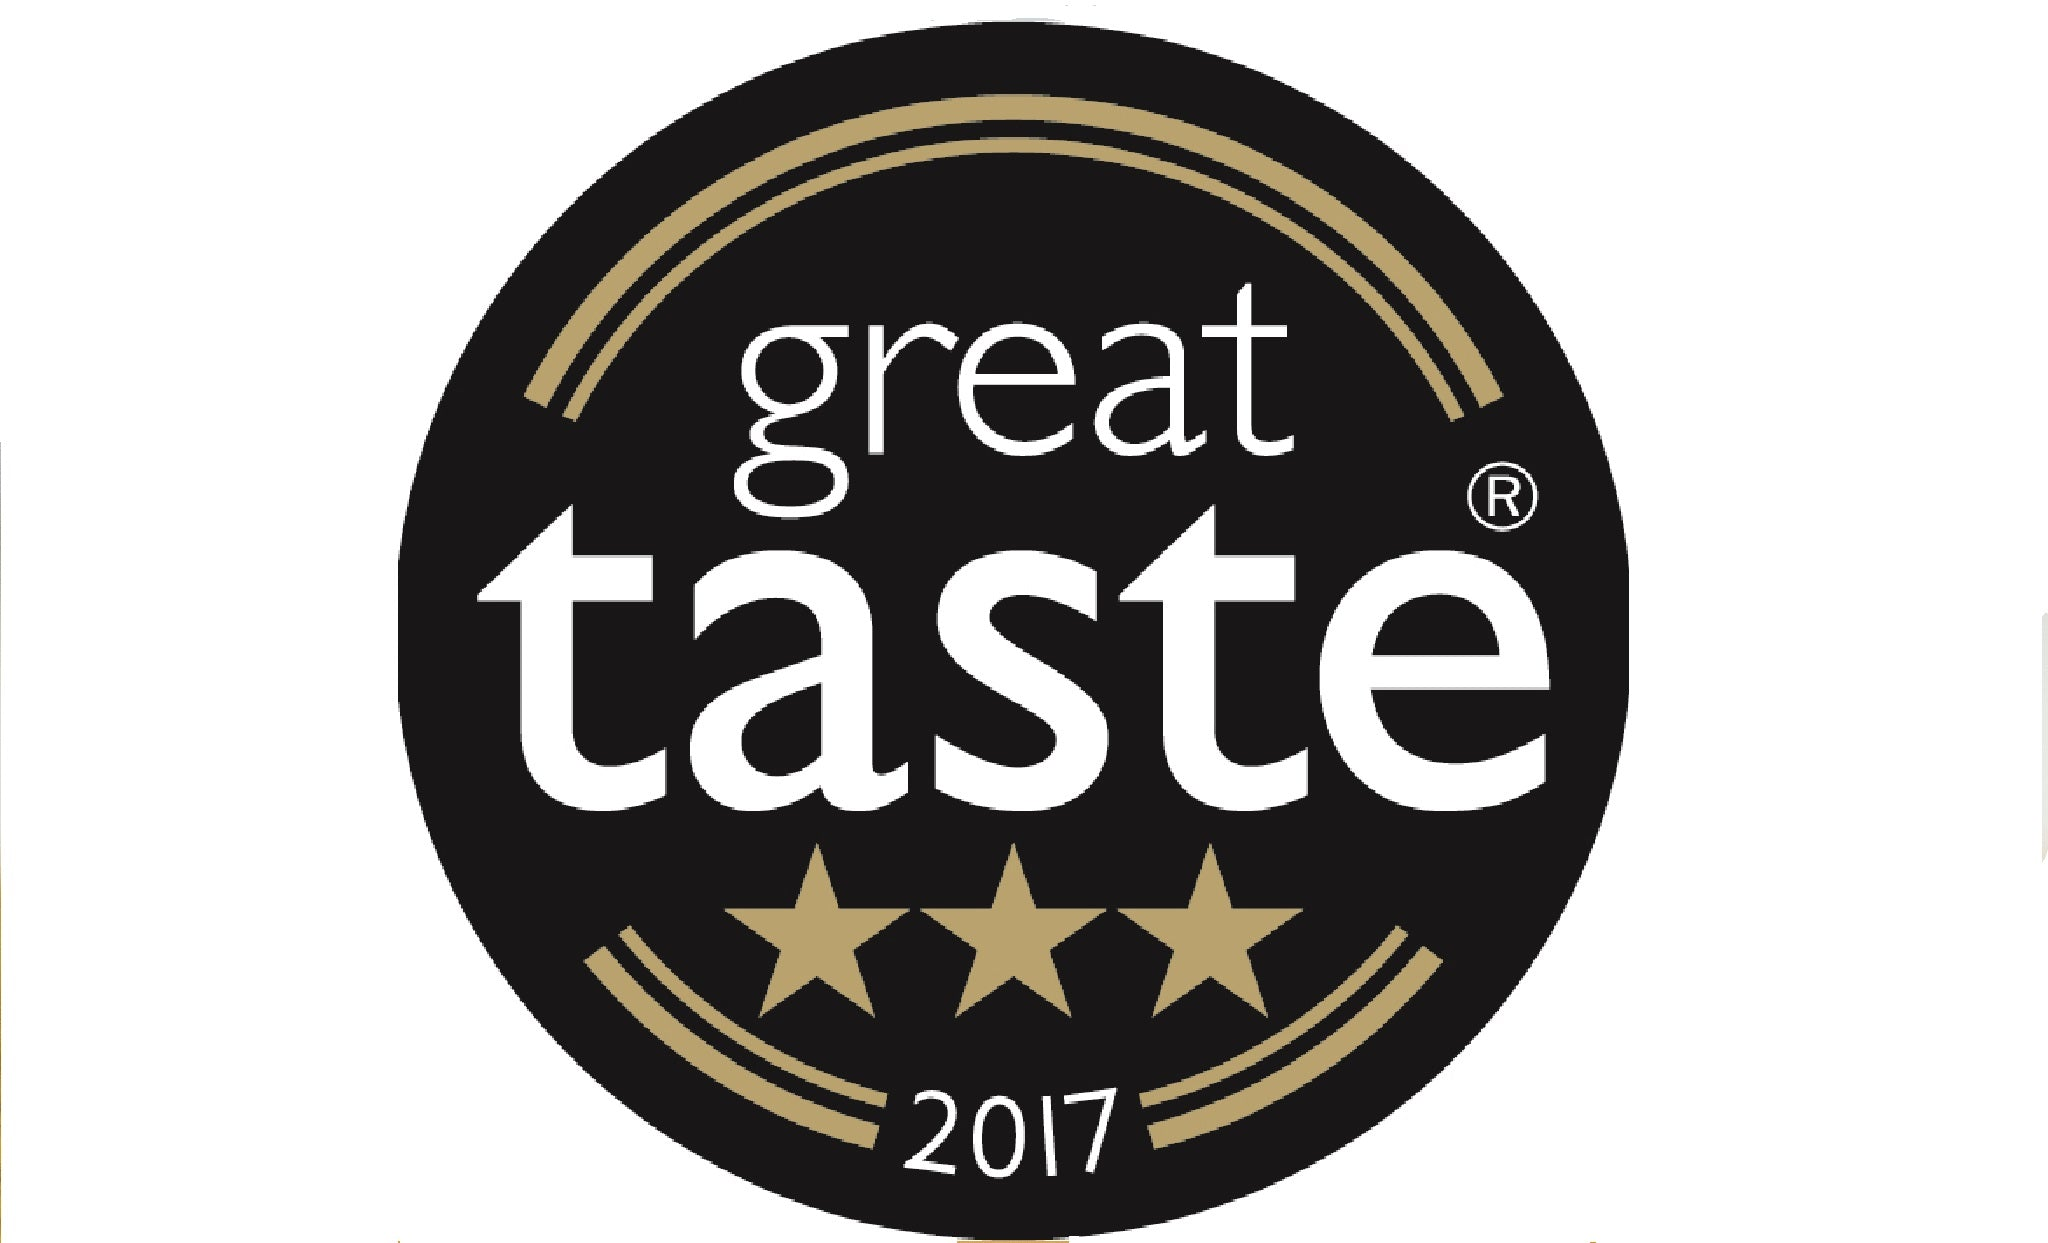 Great Taste Awards 2017 3 Star Winner